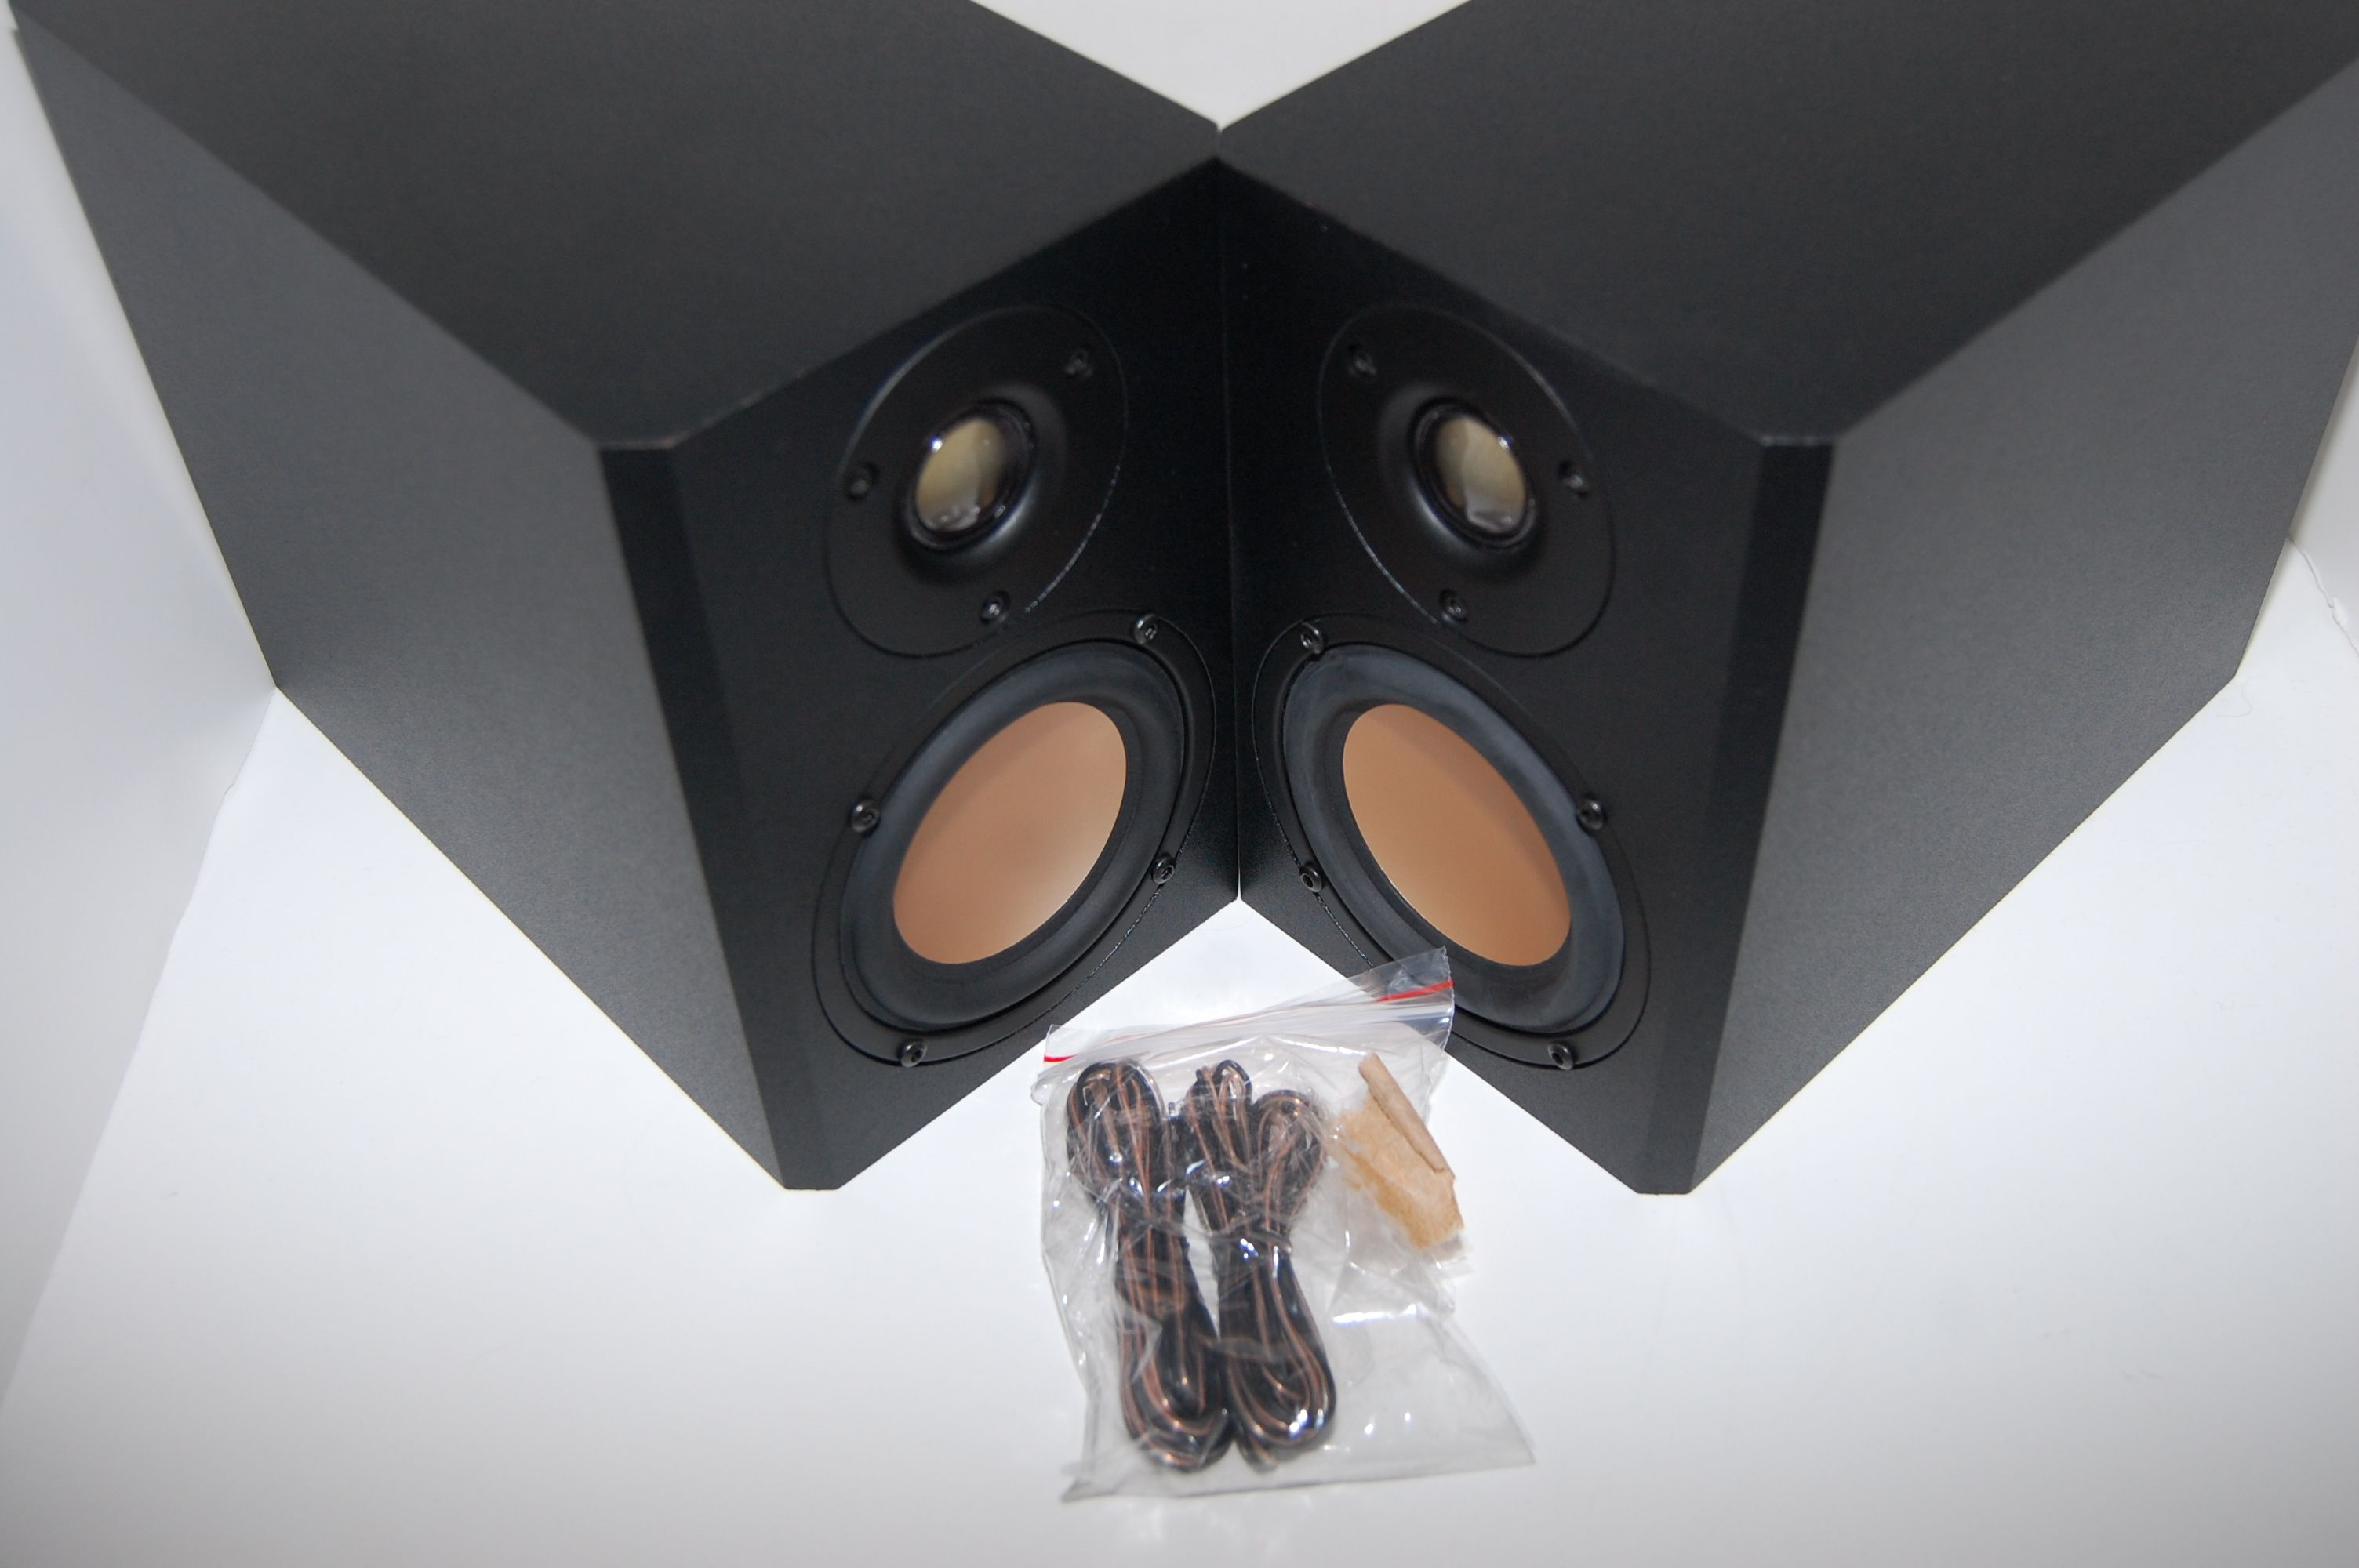 b_0_0_0_00_images_stories_ScytheRevBSpeakers_DSC_0712.JPG